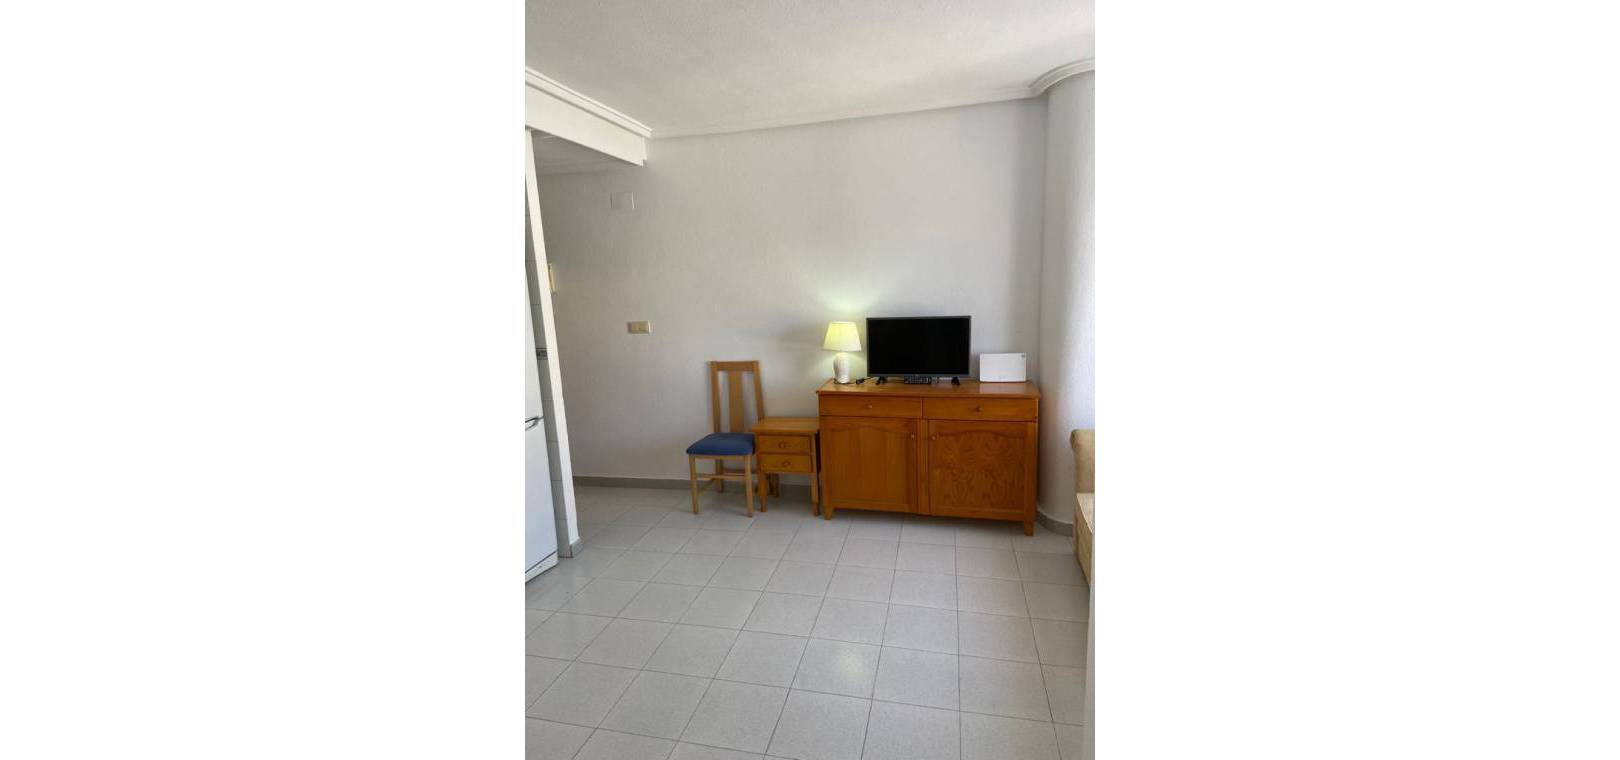 Sale - Apartment - Torrevieja - Beachside Torrevieja